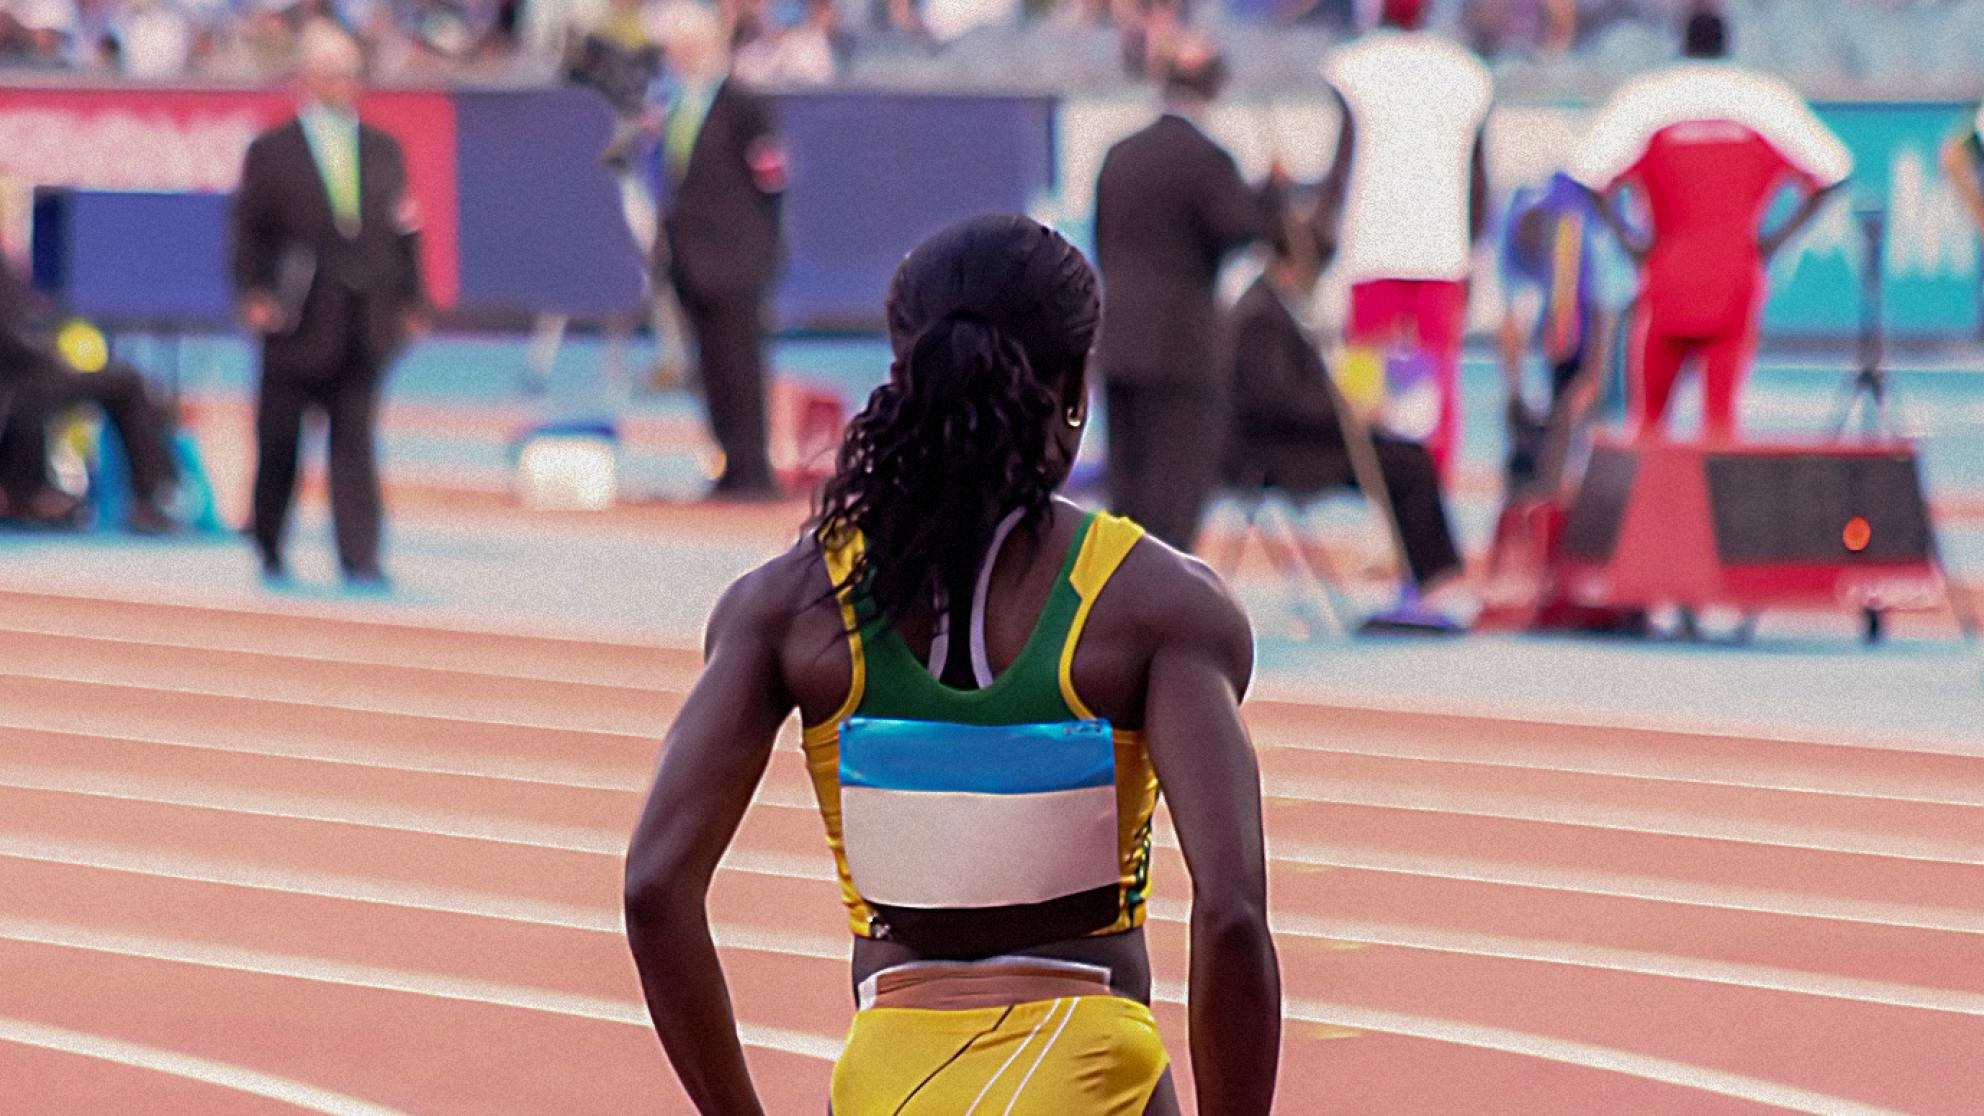 Back view of a female athlete standing on the running track.